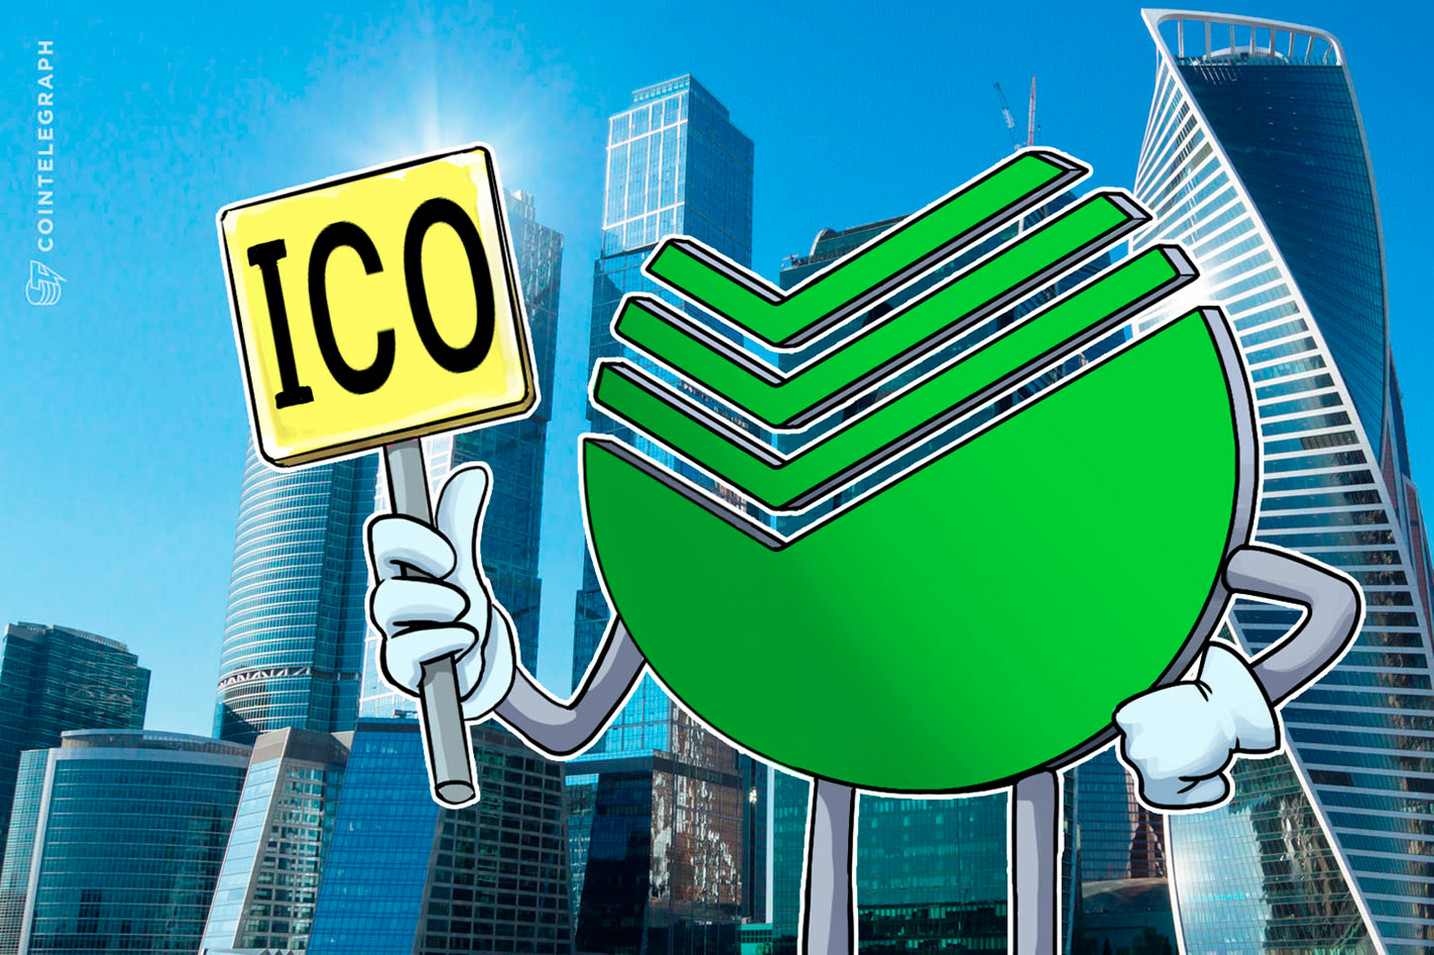 Russia's Largest Bank to Pilot First Official ICO